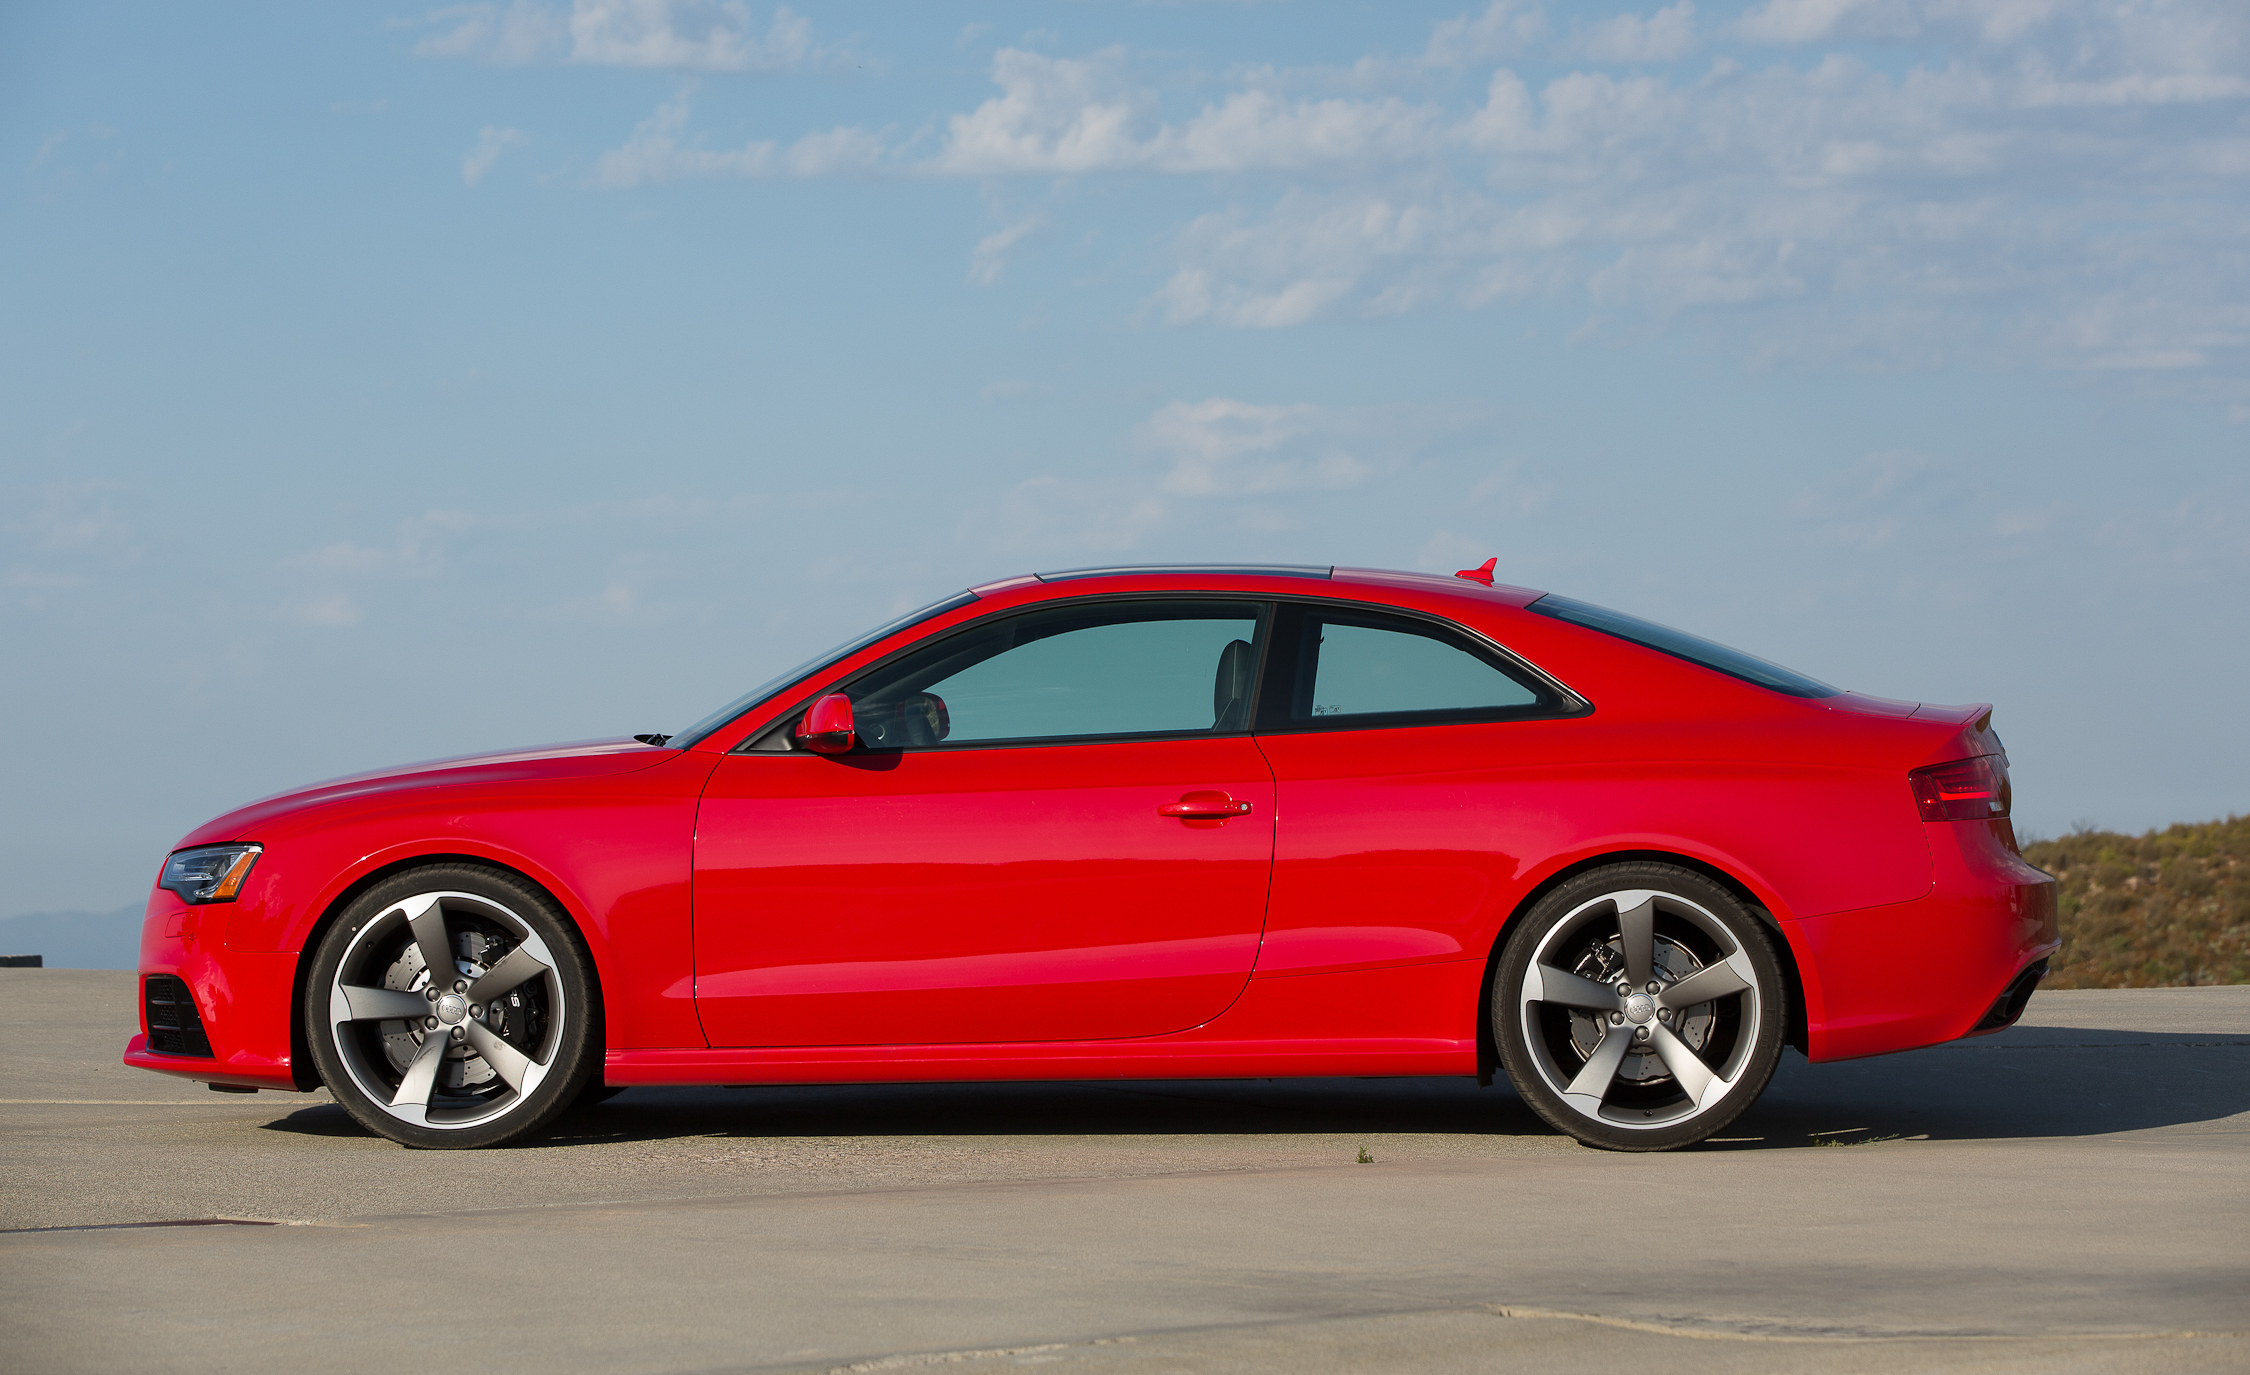 2013 Audi RS 5 Exterior Side (Photo 8 of 41)